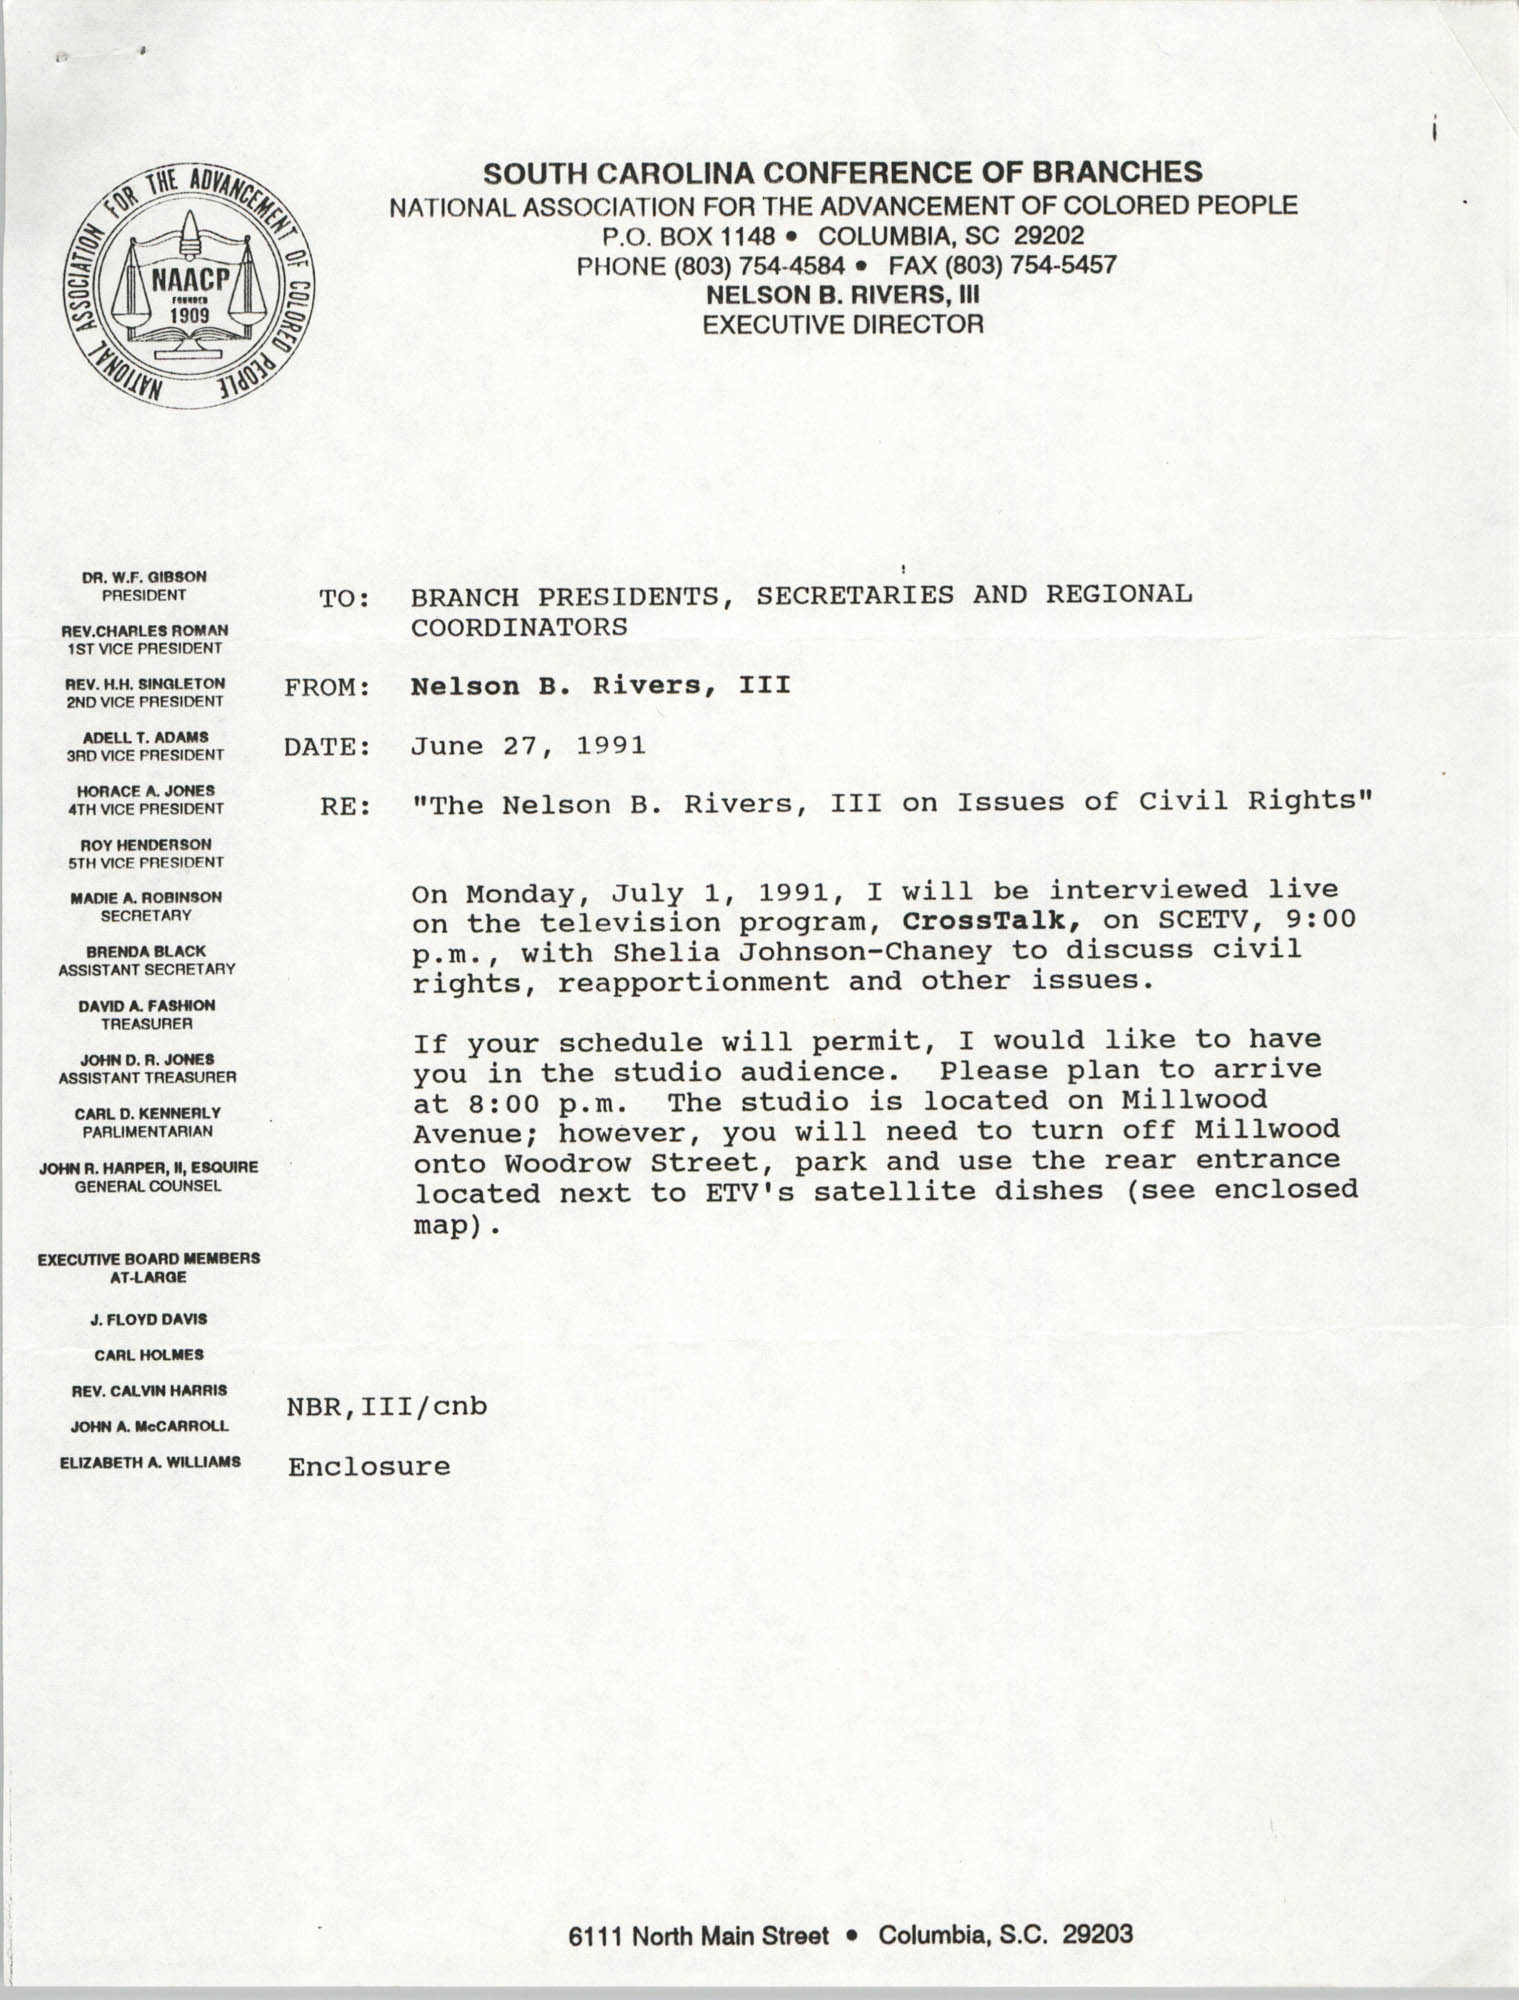 South Carolina Conference of Branches of the NAACP Memorandum, June 27, 1991